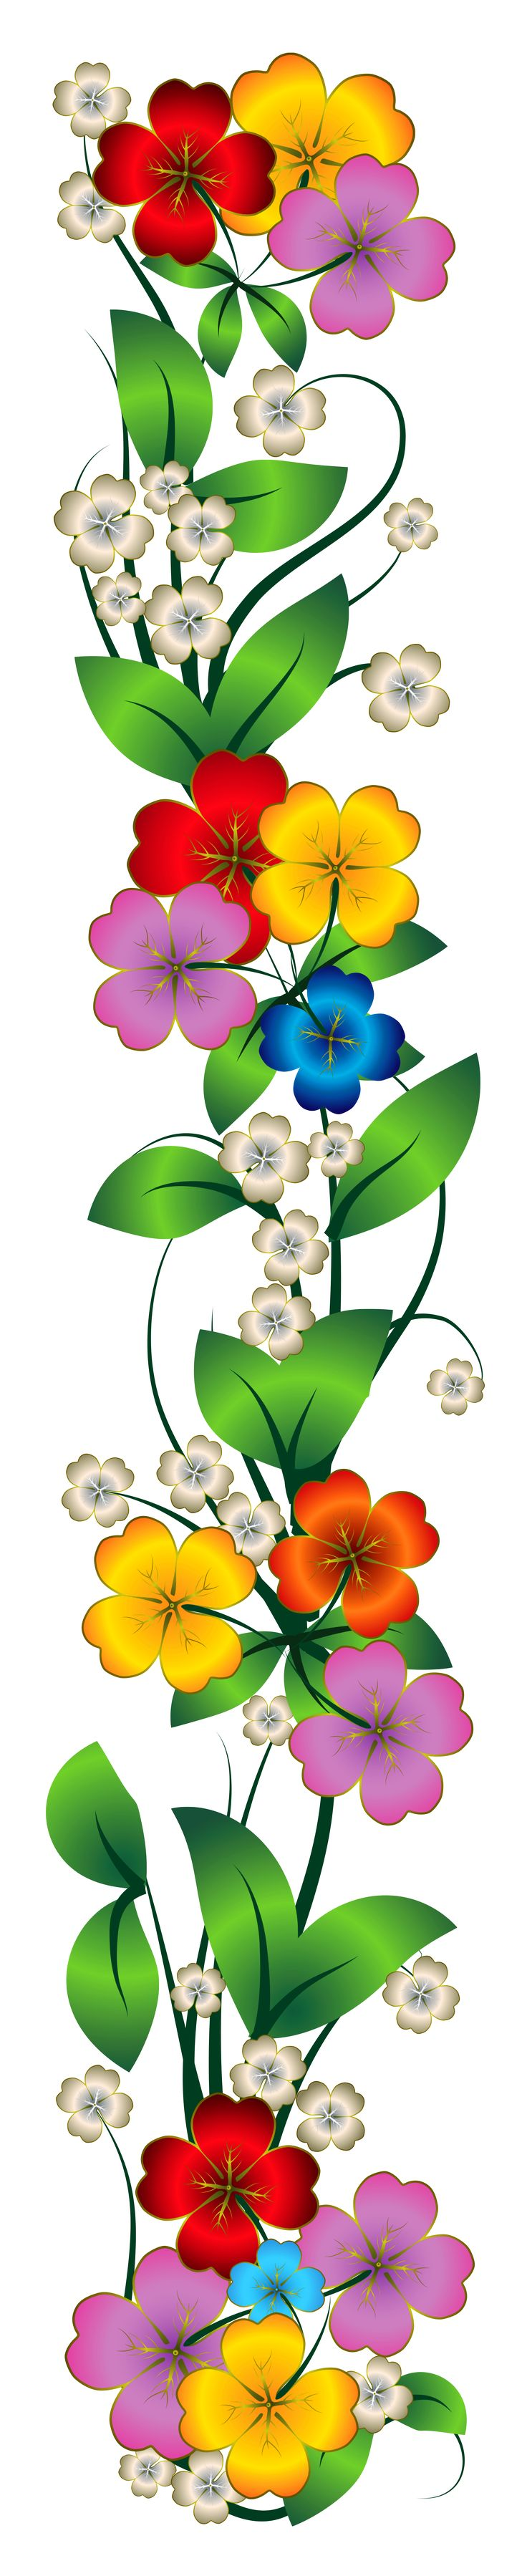 Flowers Decor PNG Clipart